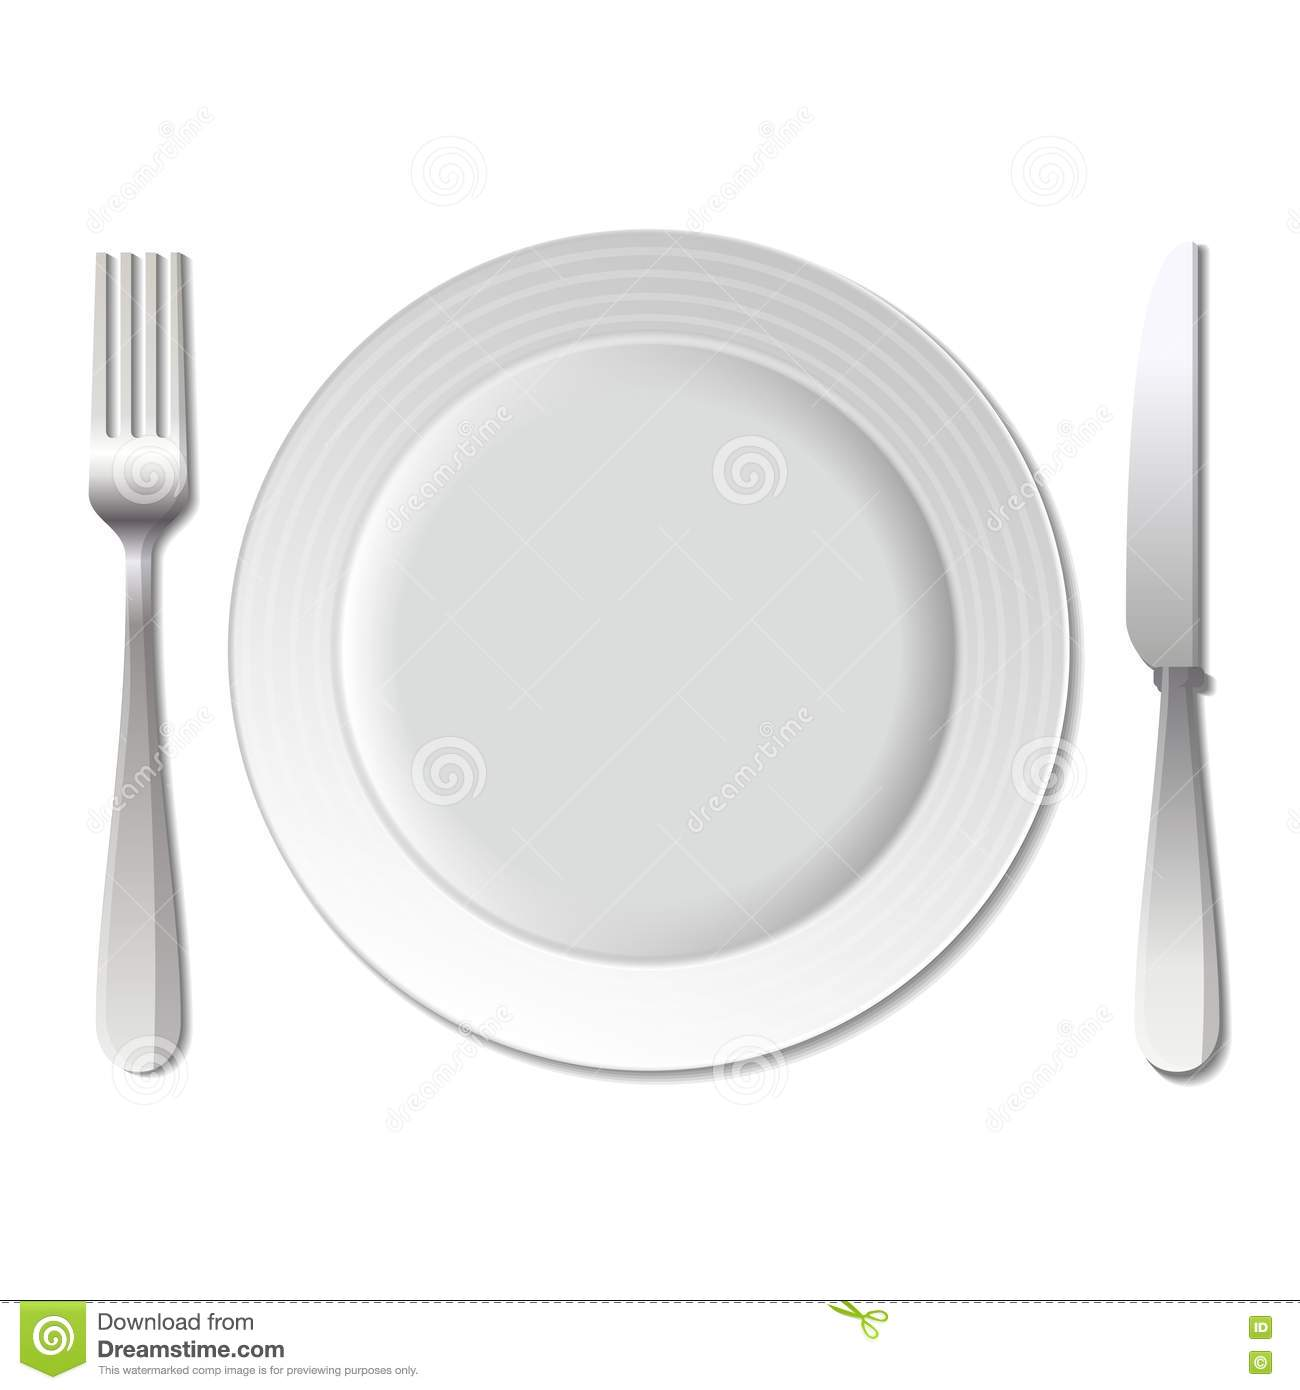 Dinner Plate, Knife And Fork. Vector. Stock Image.